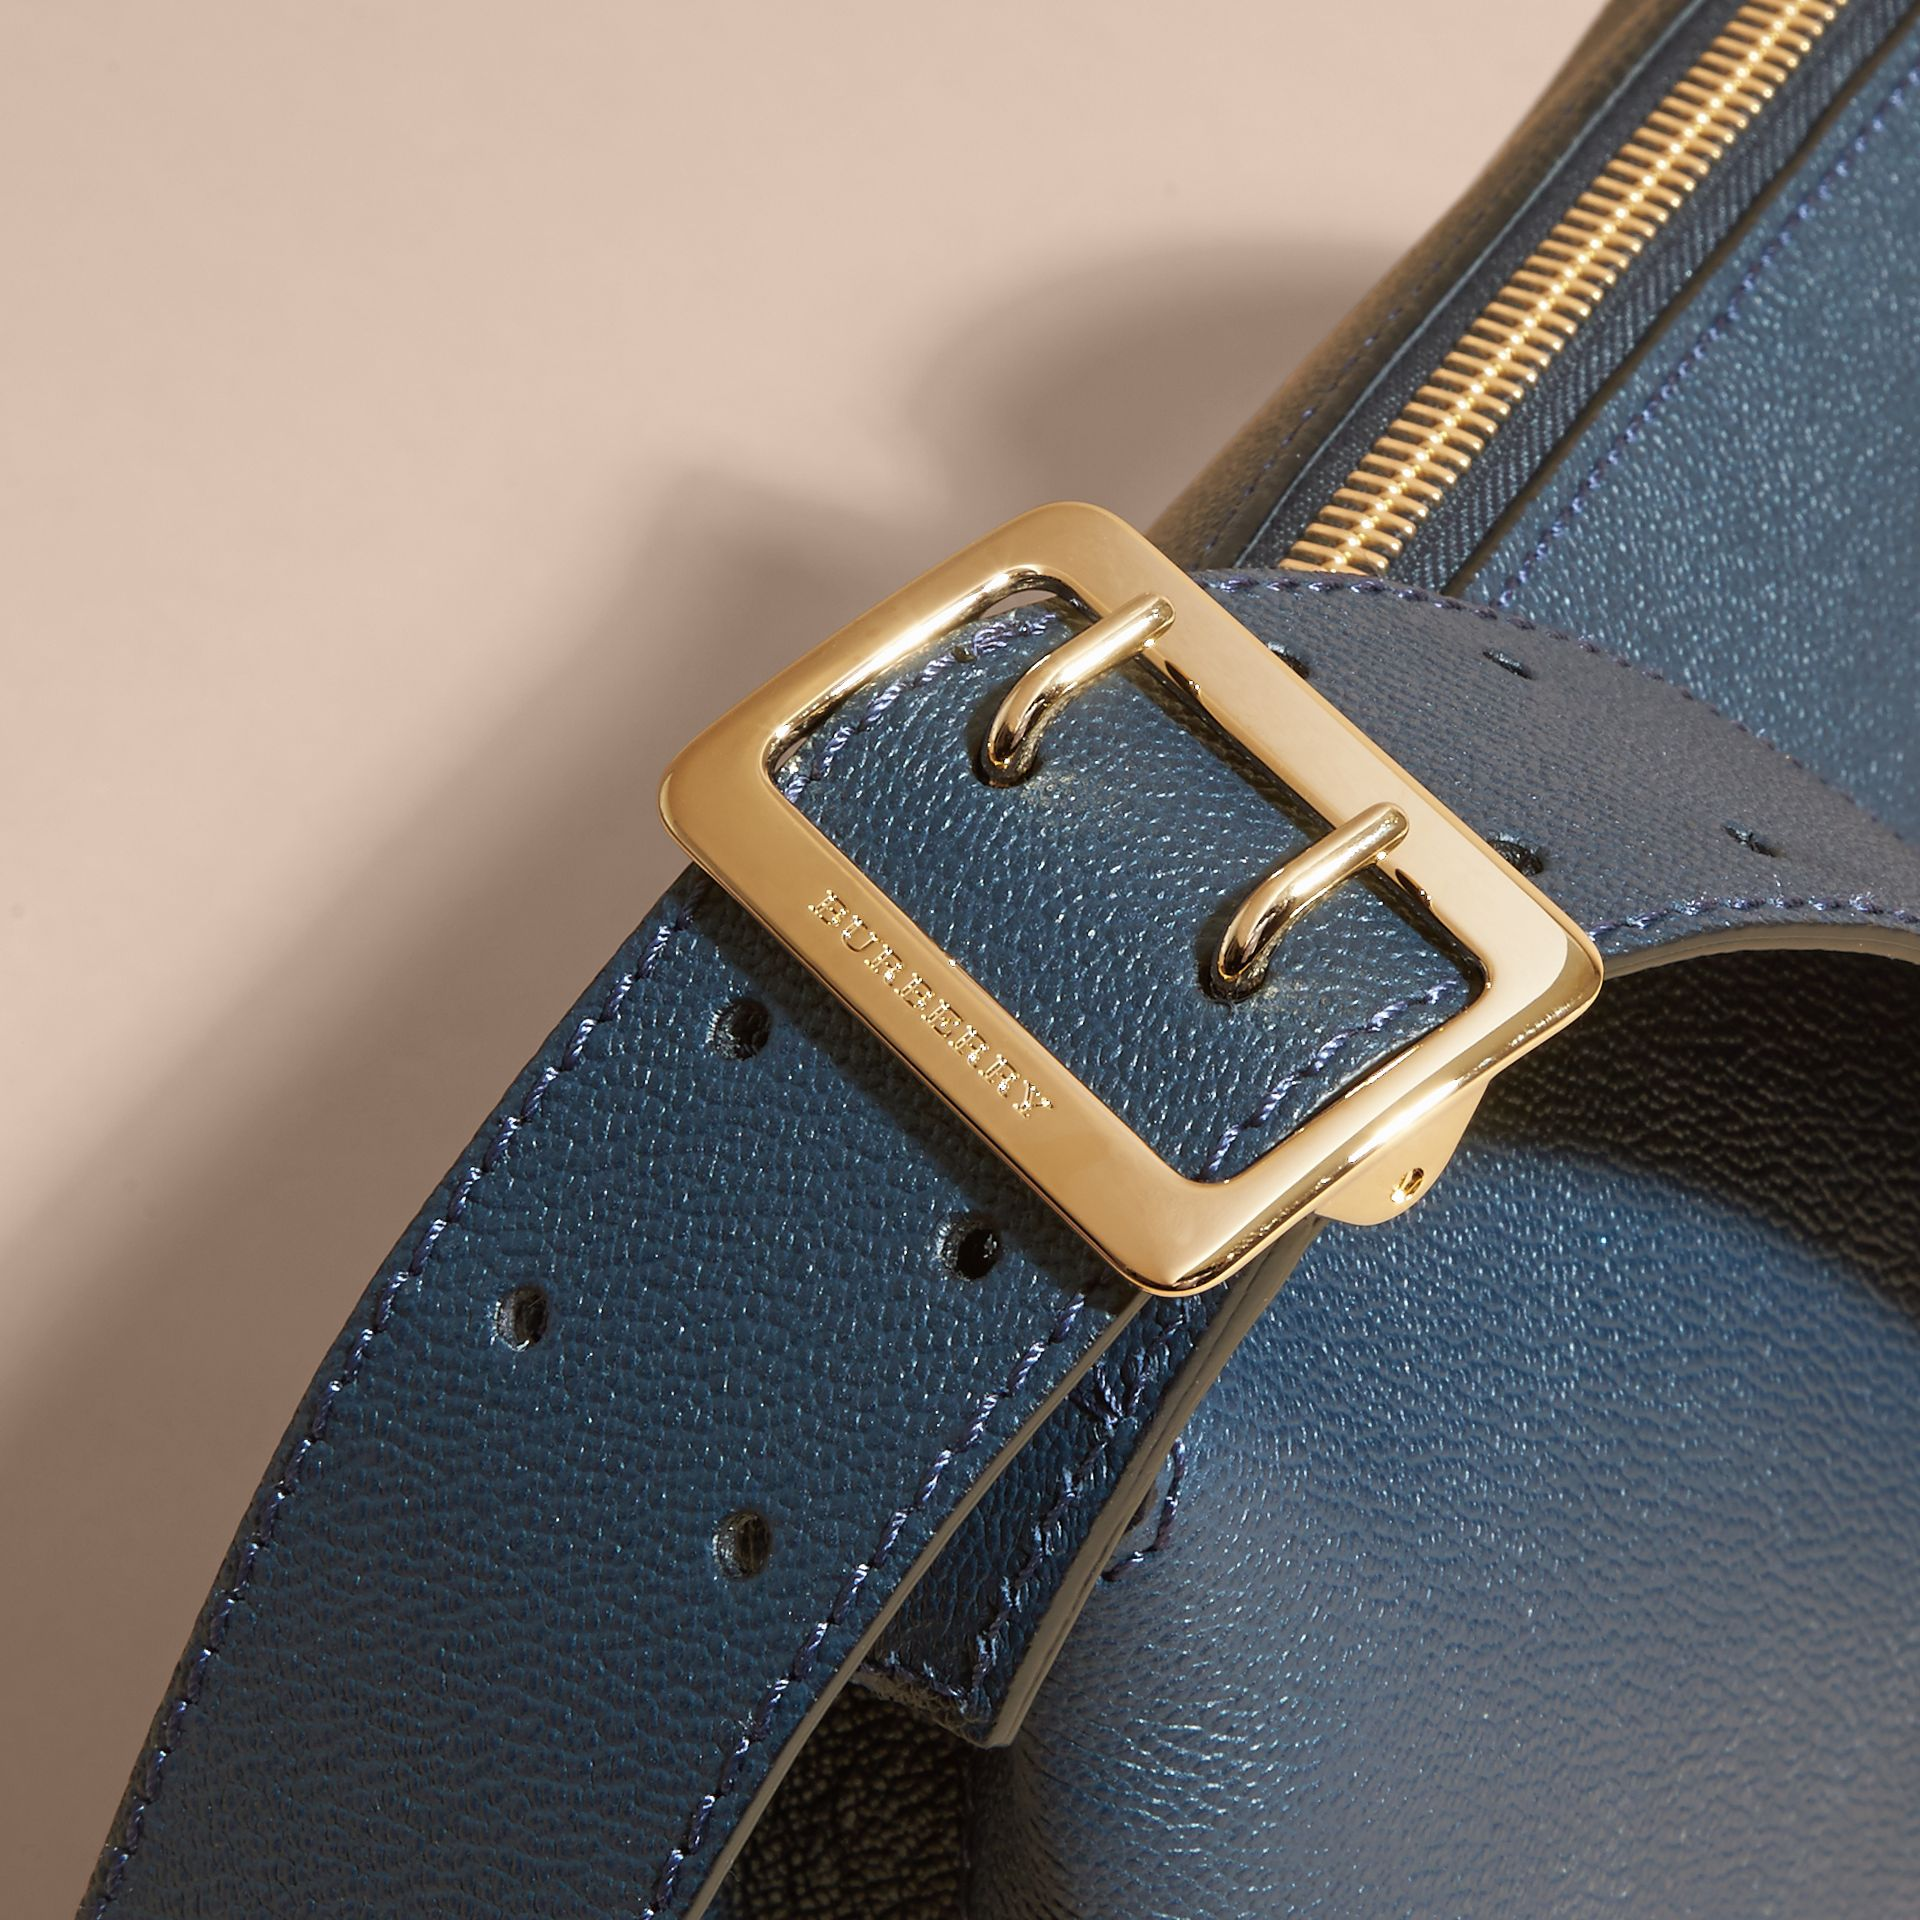 Buckle Detail Leather Crossbody Bag Blue Carbon - gallery image 2